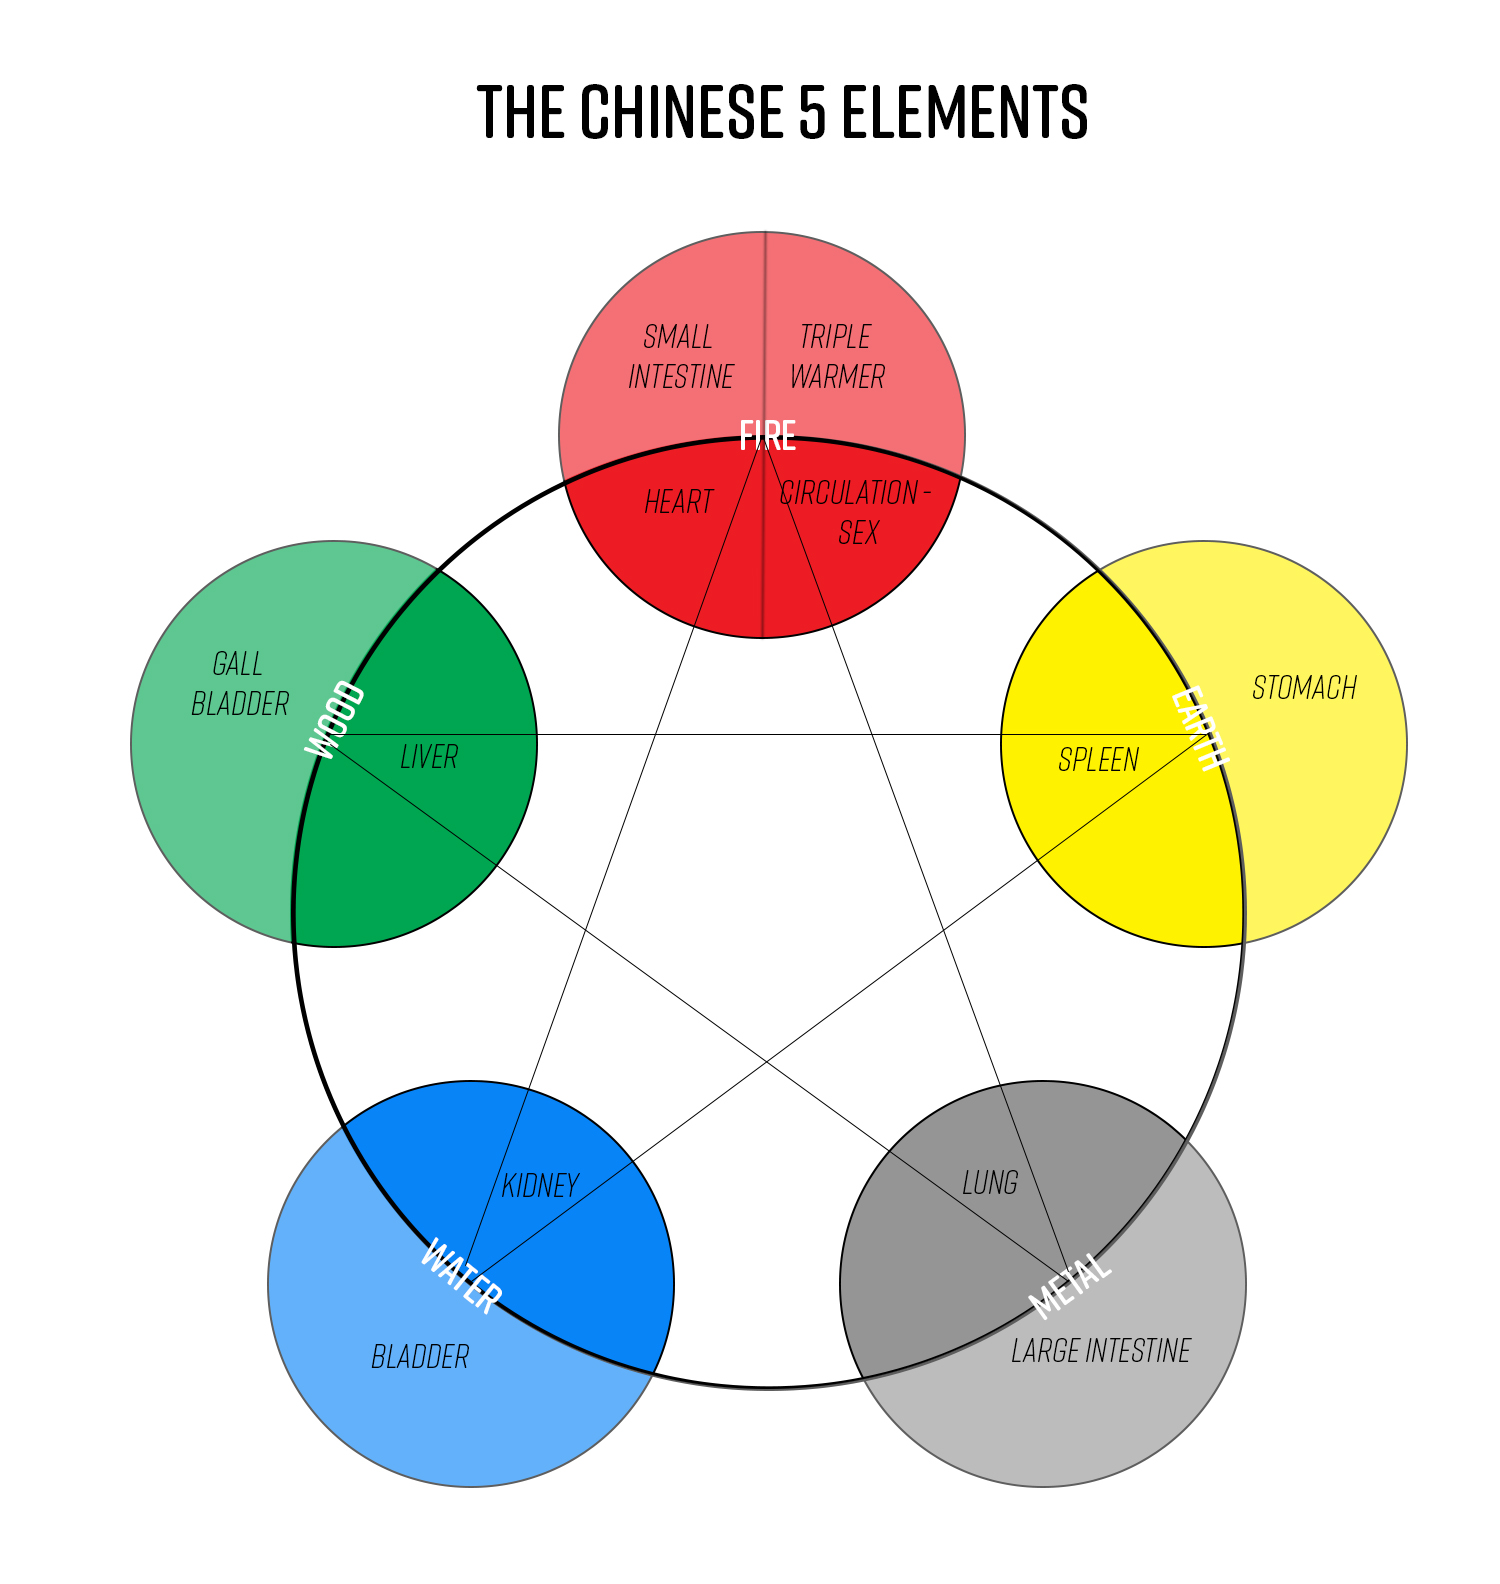 The Chinese 5 Elements